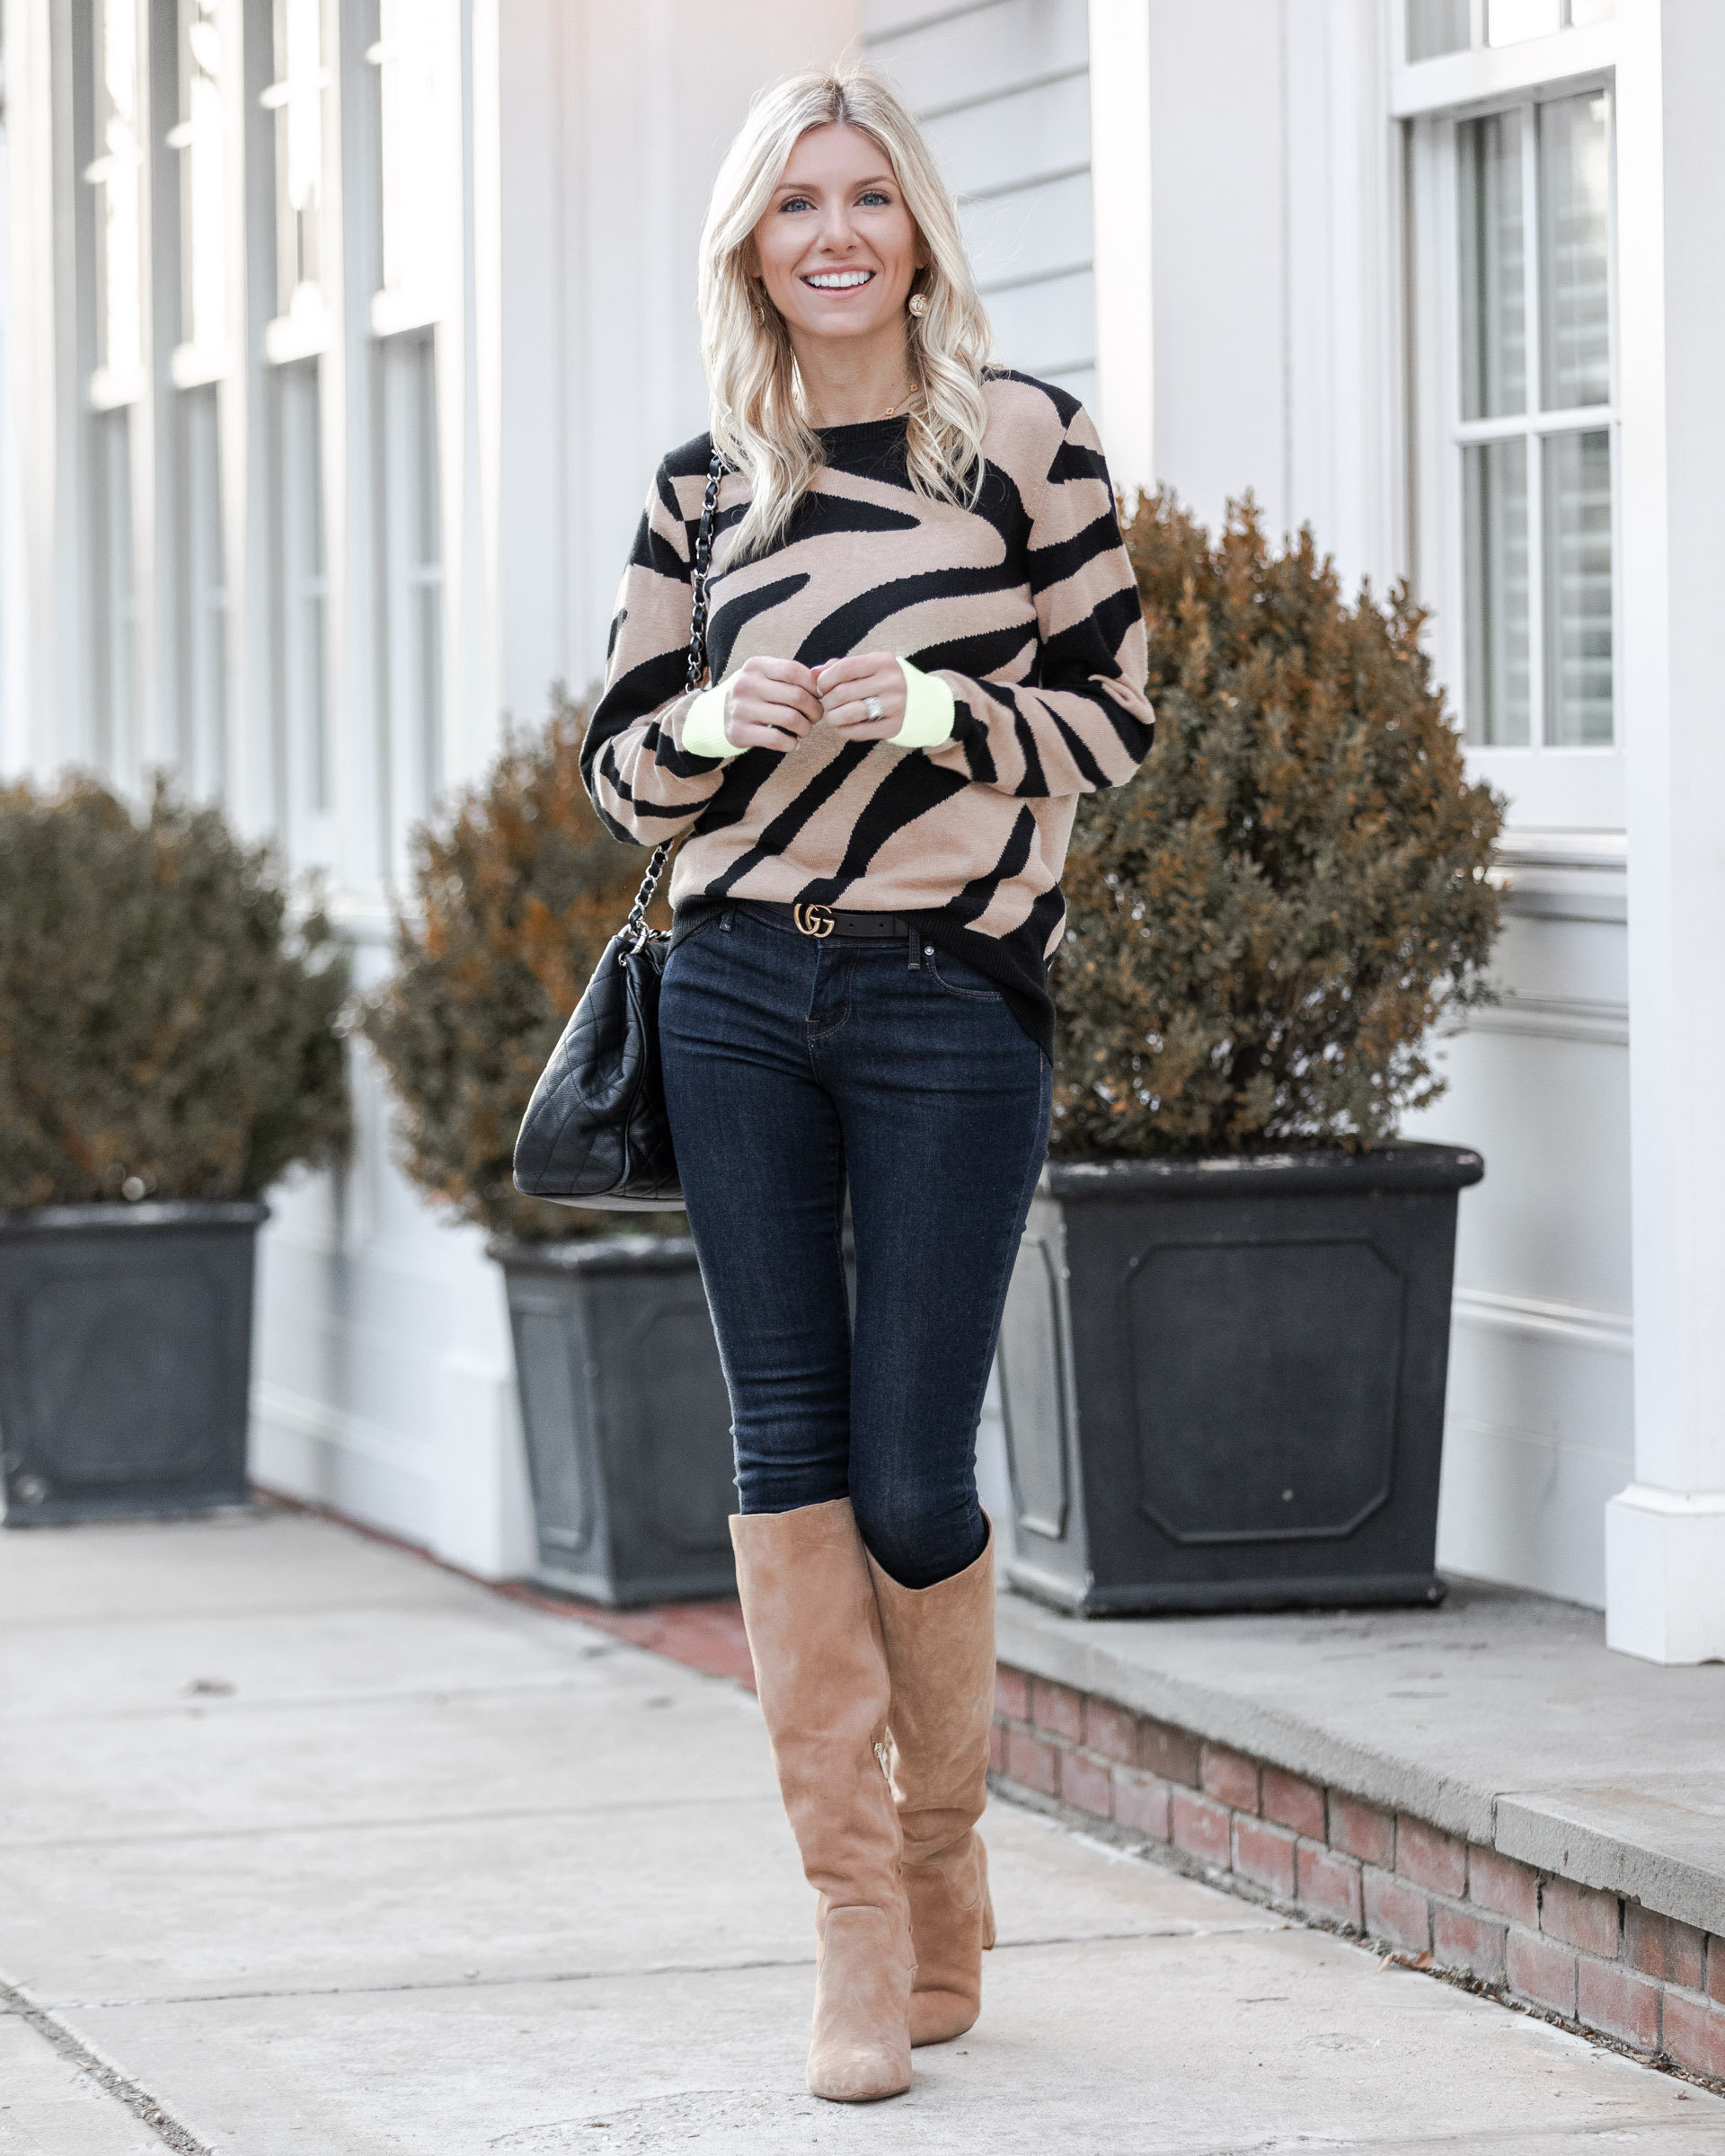 tan-and-black-zebra-sweater-the-glamorous-gal